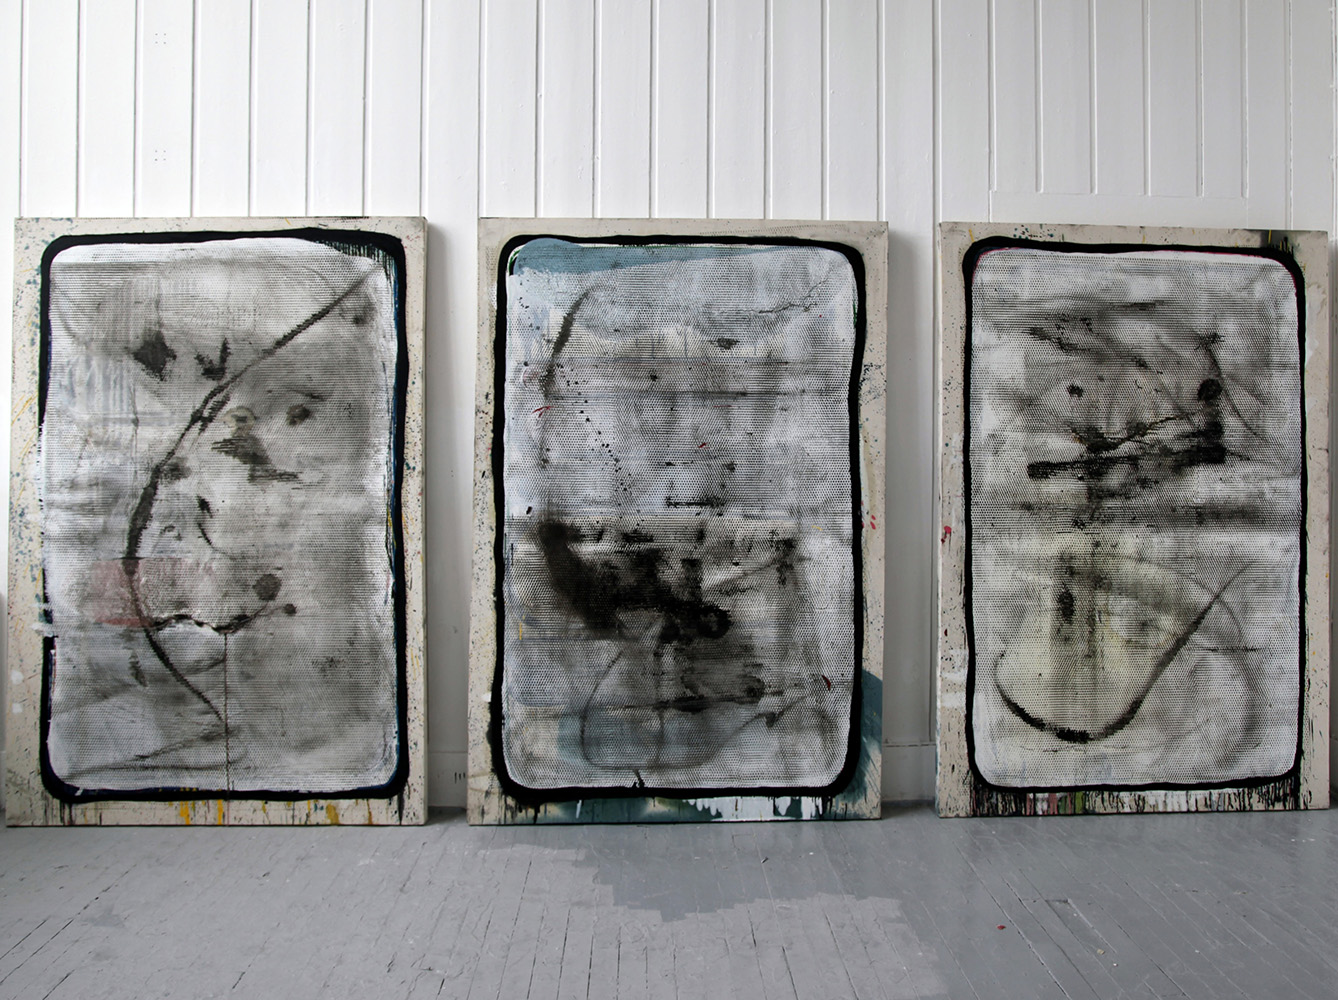 Eoin Francis McCormack, Modern Times 1, 2 and 3.jpg